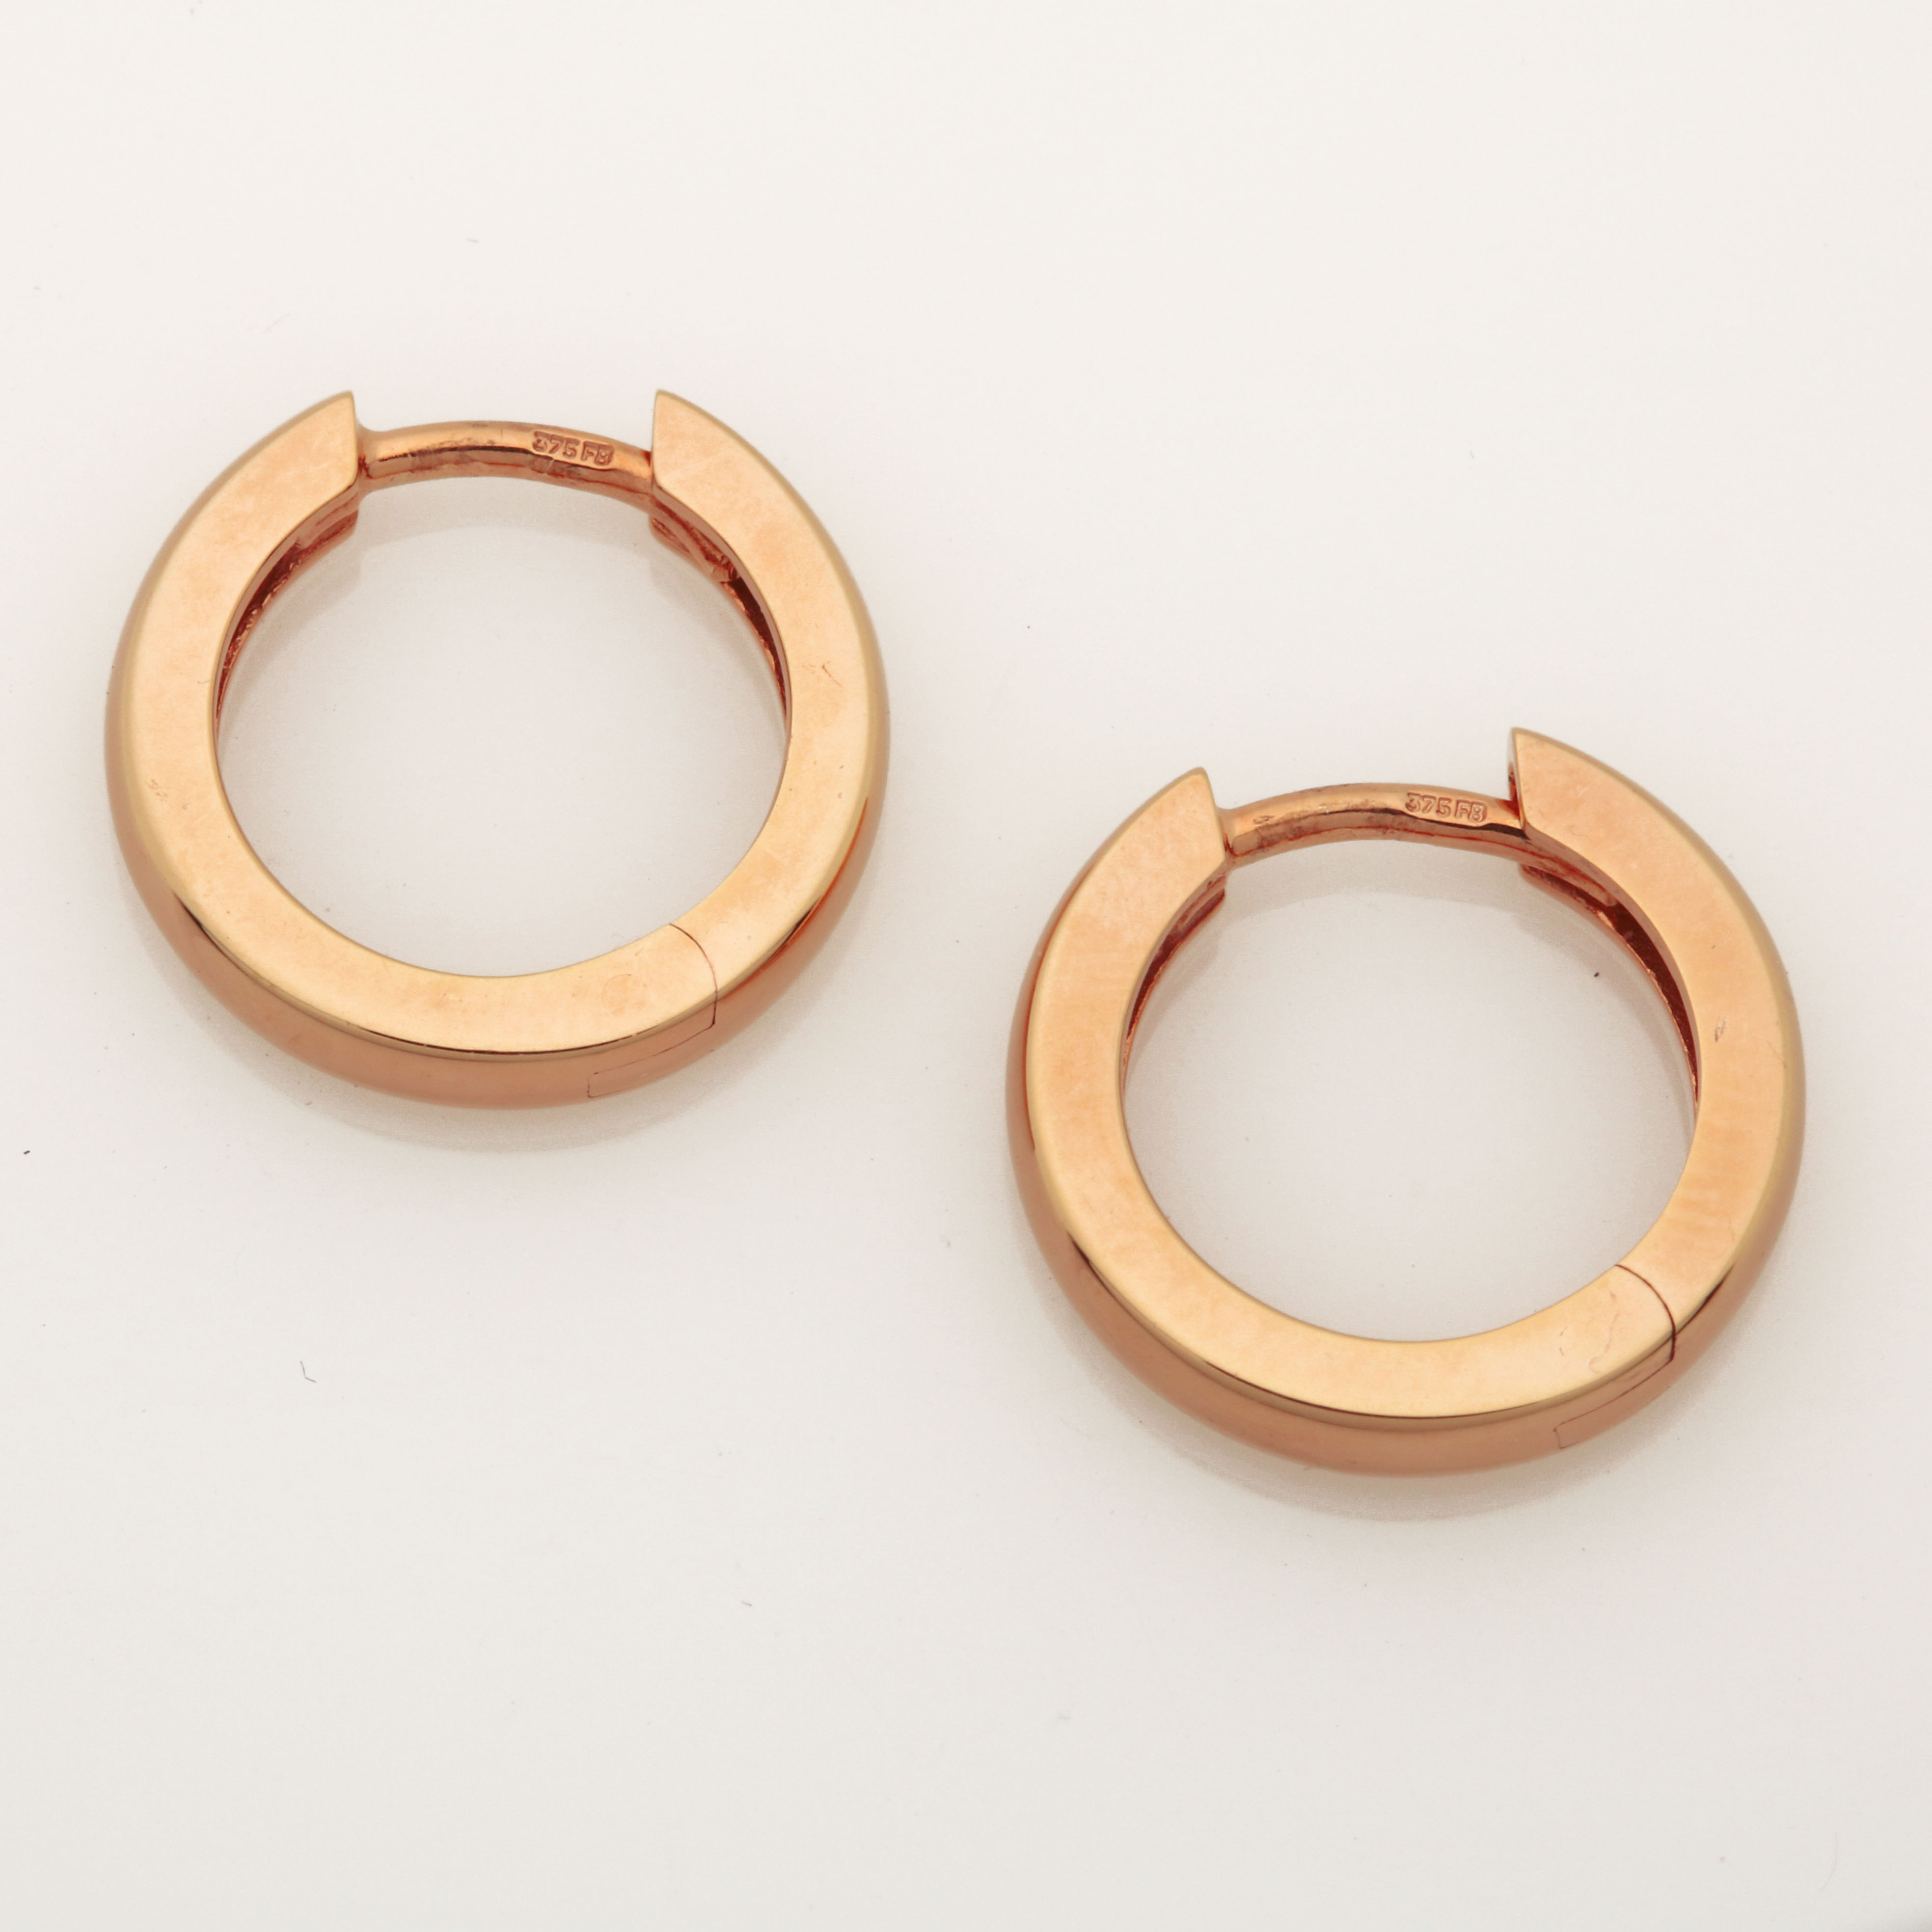 E0207 9ct Rose gold huggies earrings $340